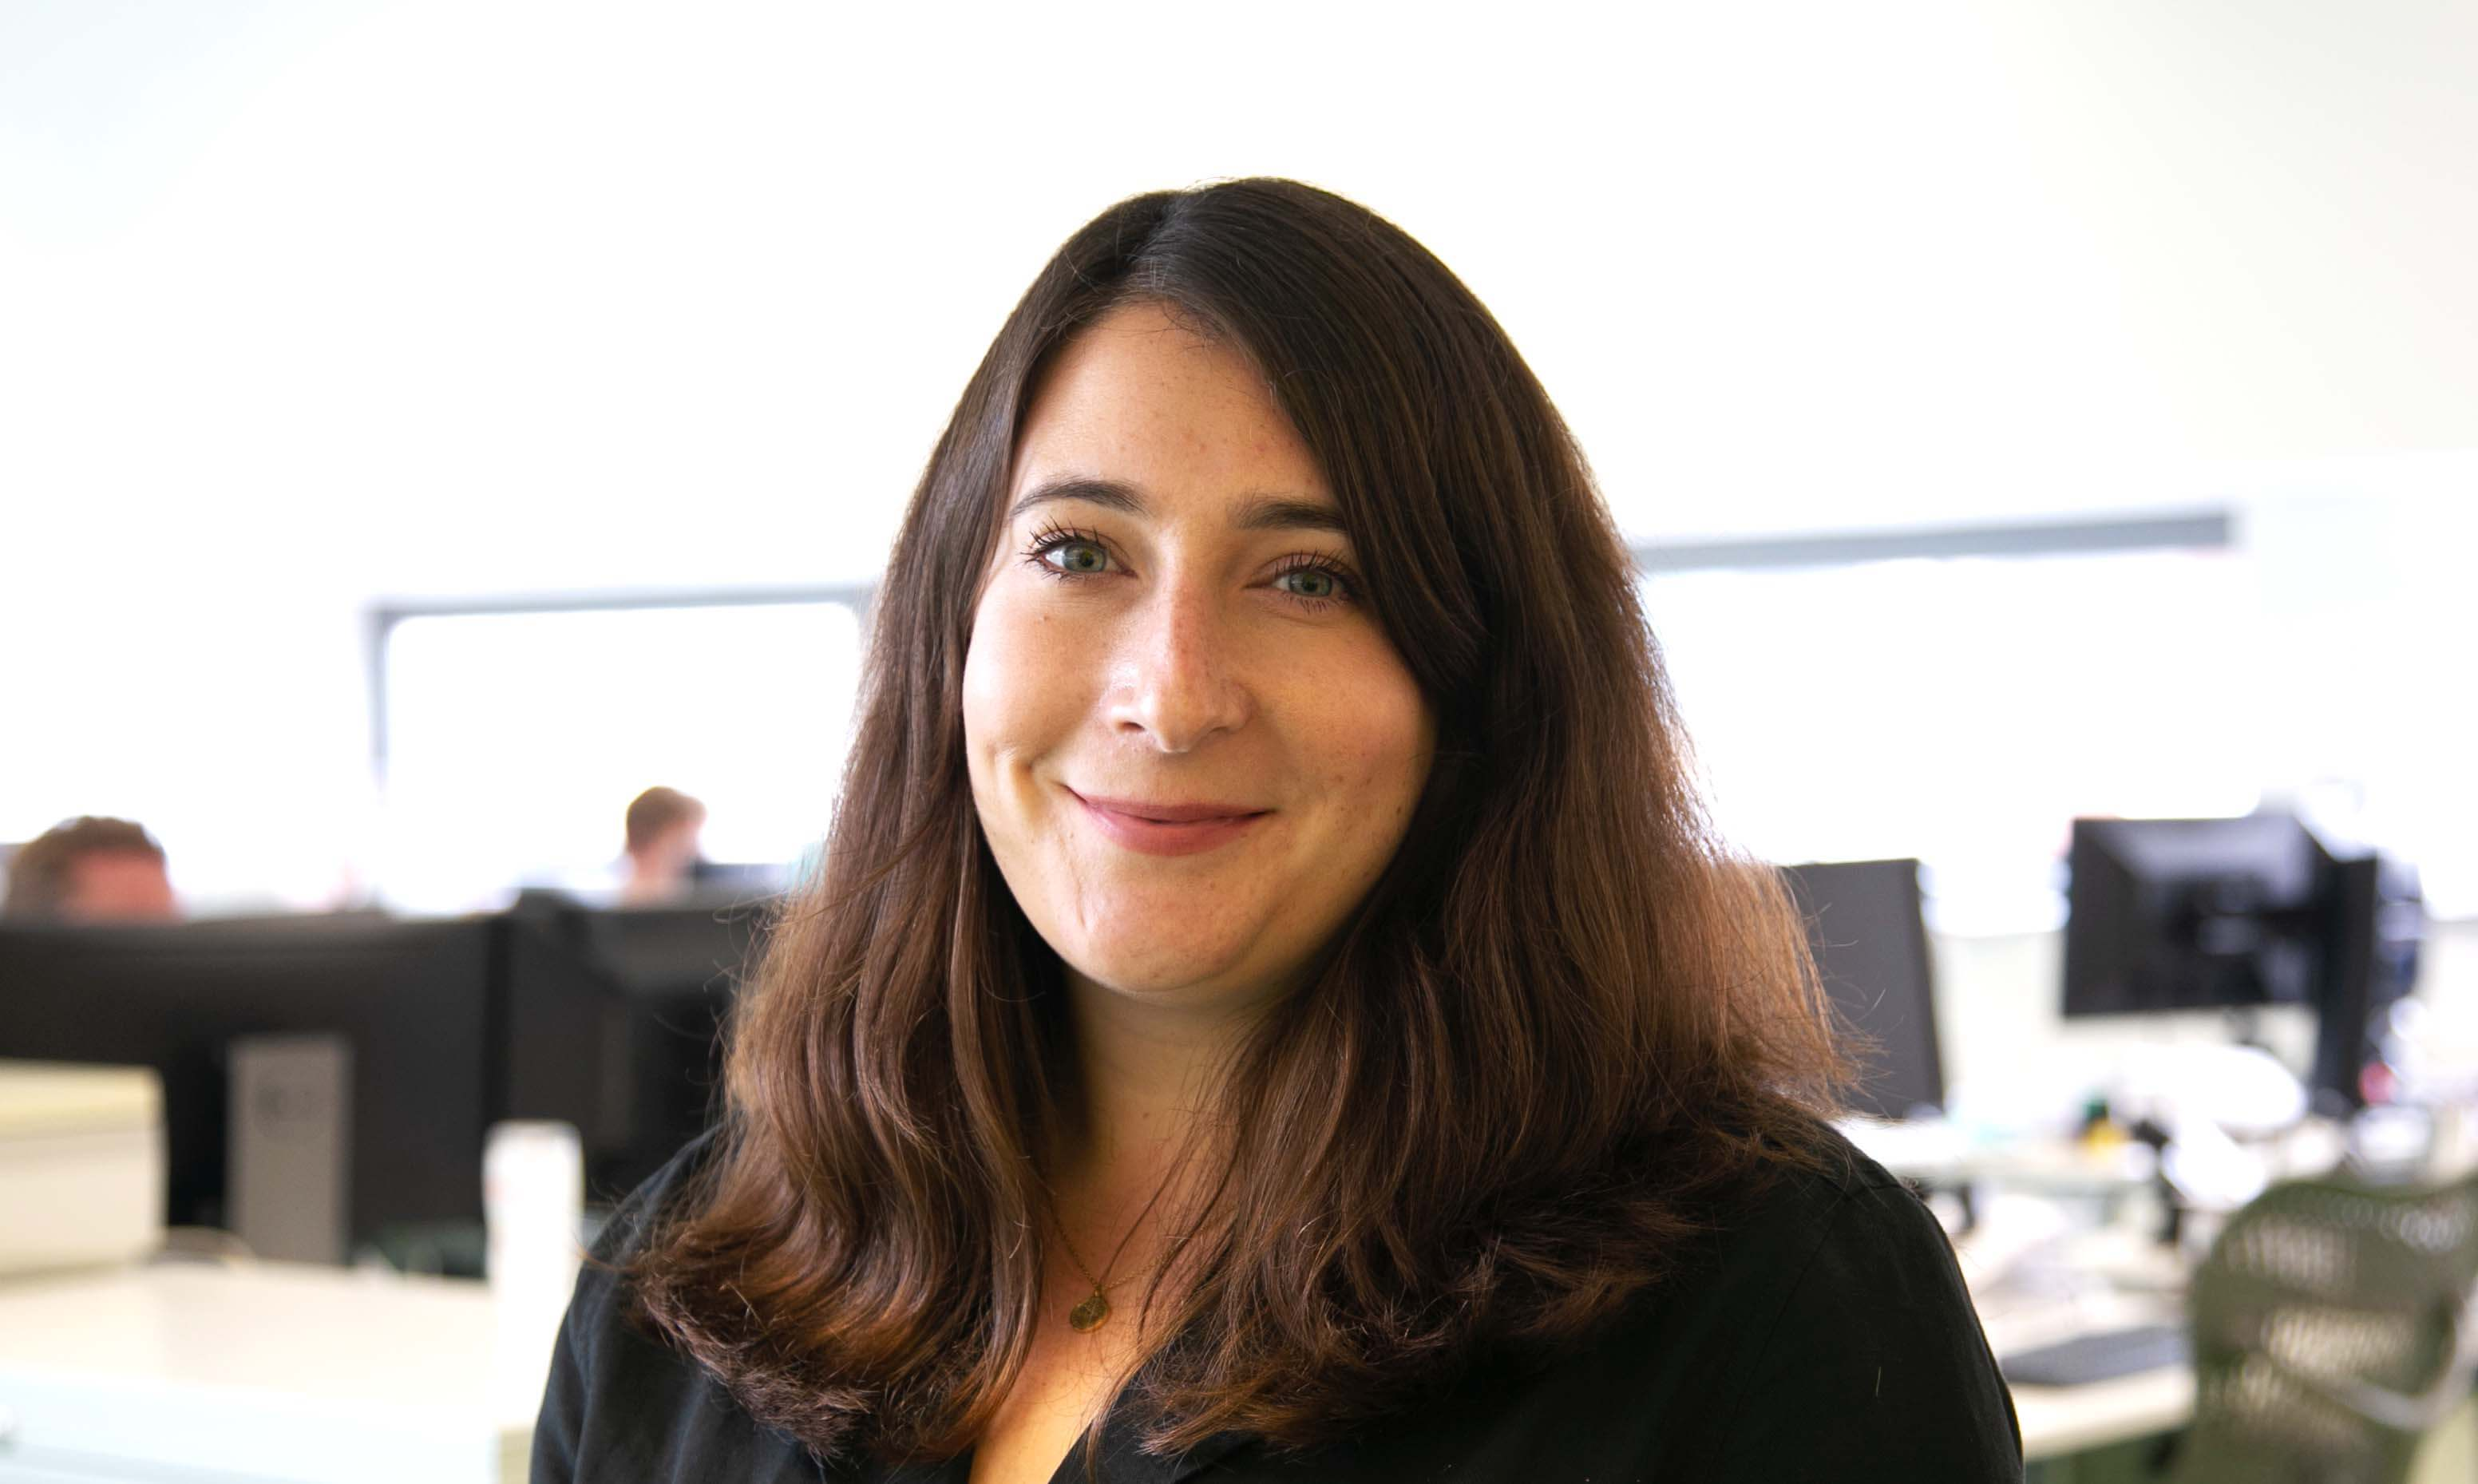 Image of Laura Emerson, Head of Operations at Peregrine Communications